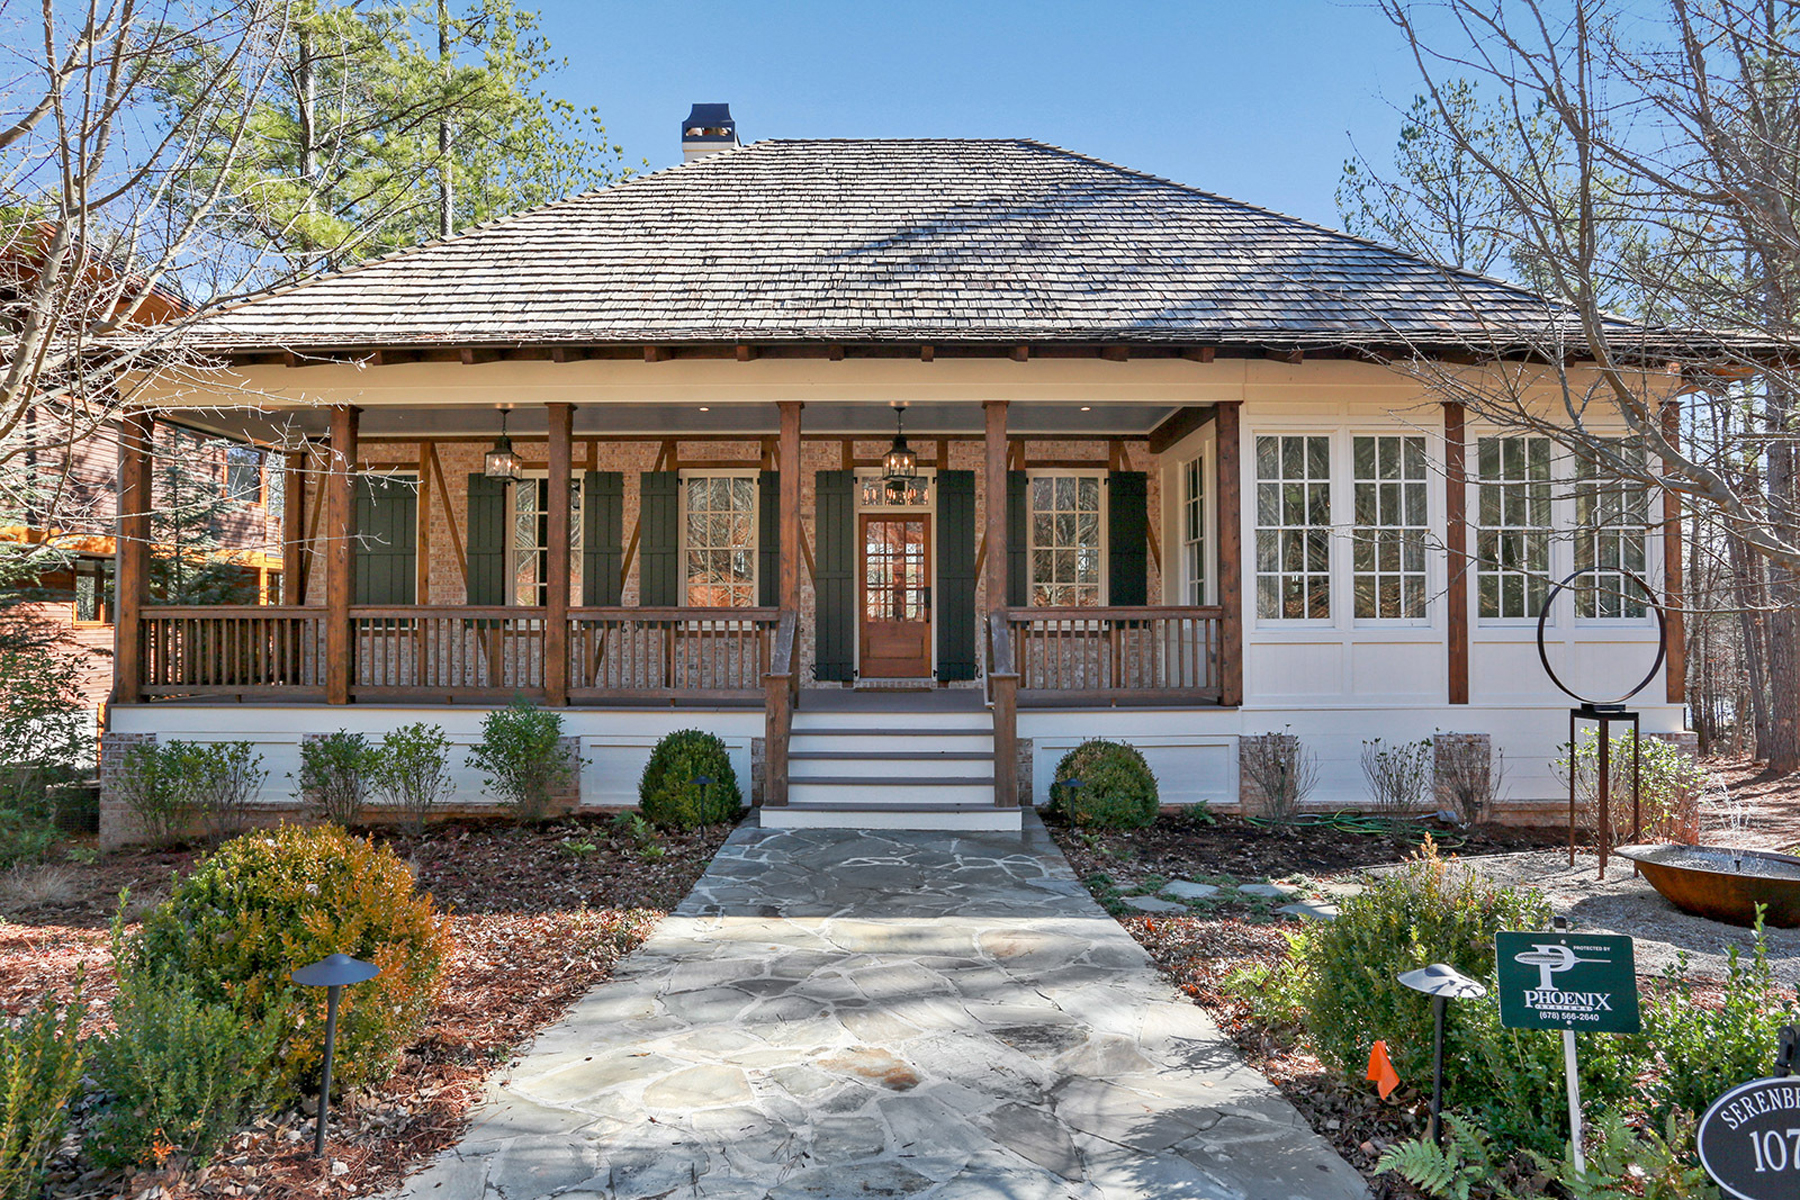 Single Family Home for Active at 2015 Atlanta Homes & Lifestyles Designer Showhouse! 10748 Serenbe Lane Chattahoochee Hills, Georgia 30268 United States